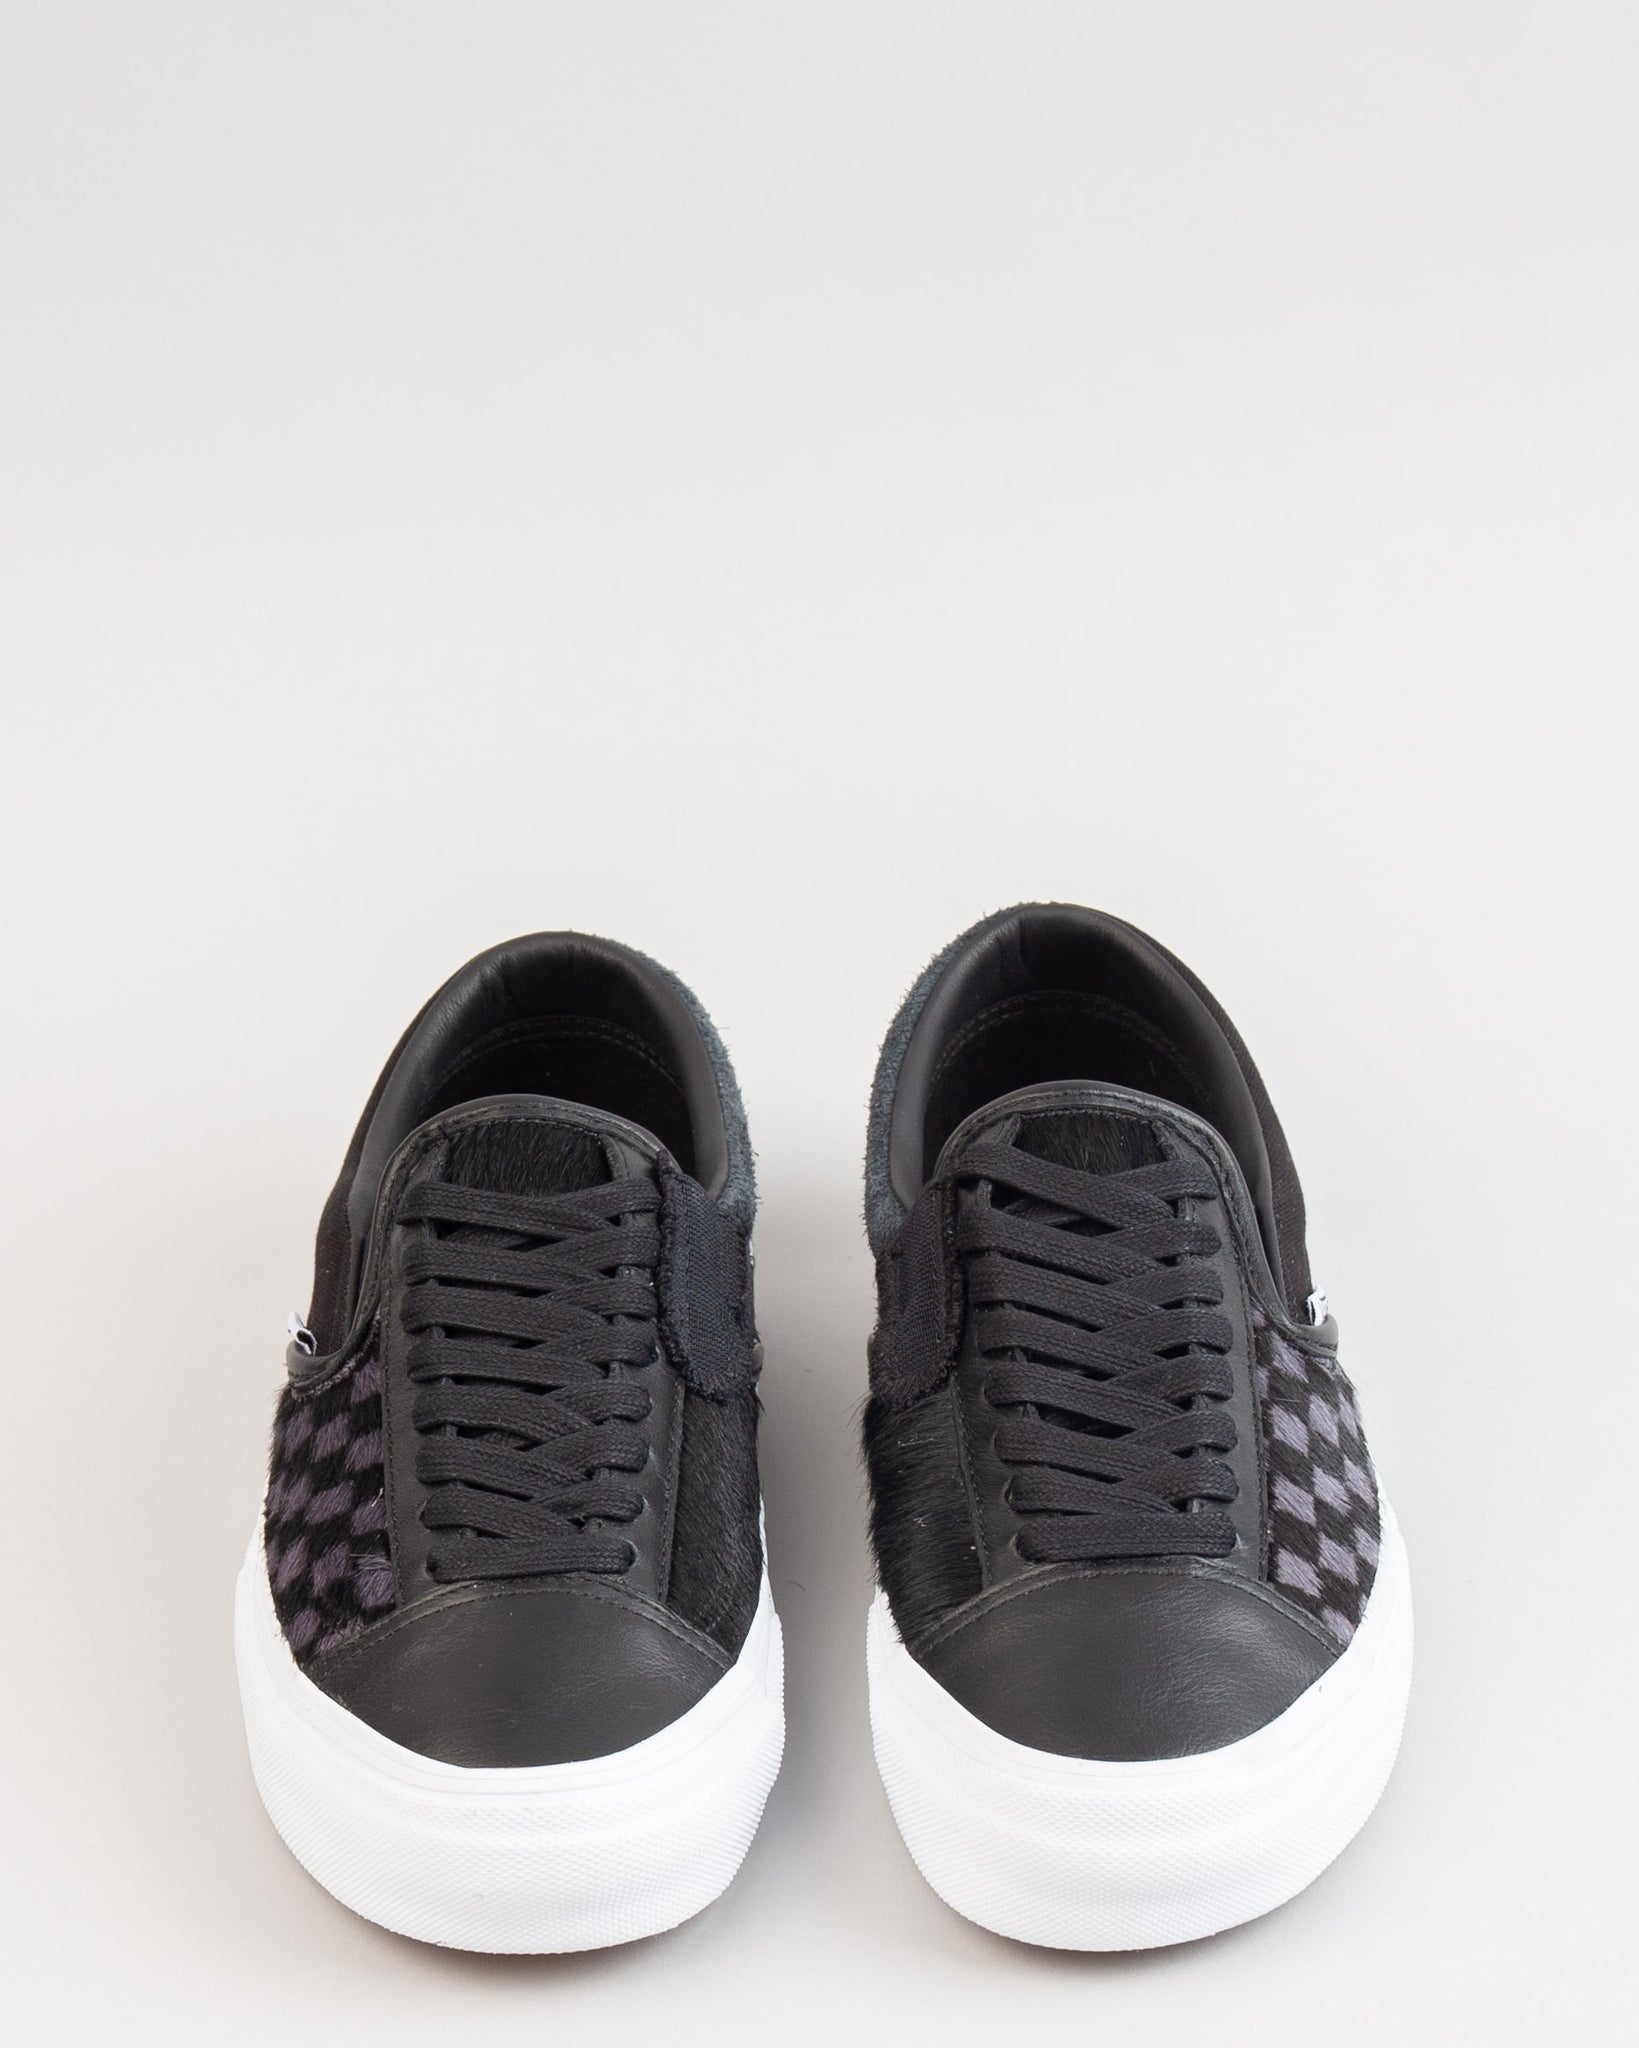 Slip-On Cap LX (PONY) Black/True White